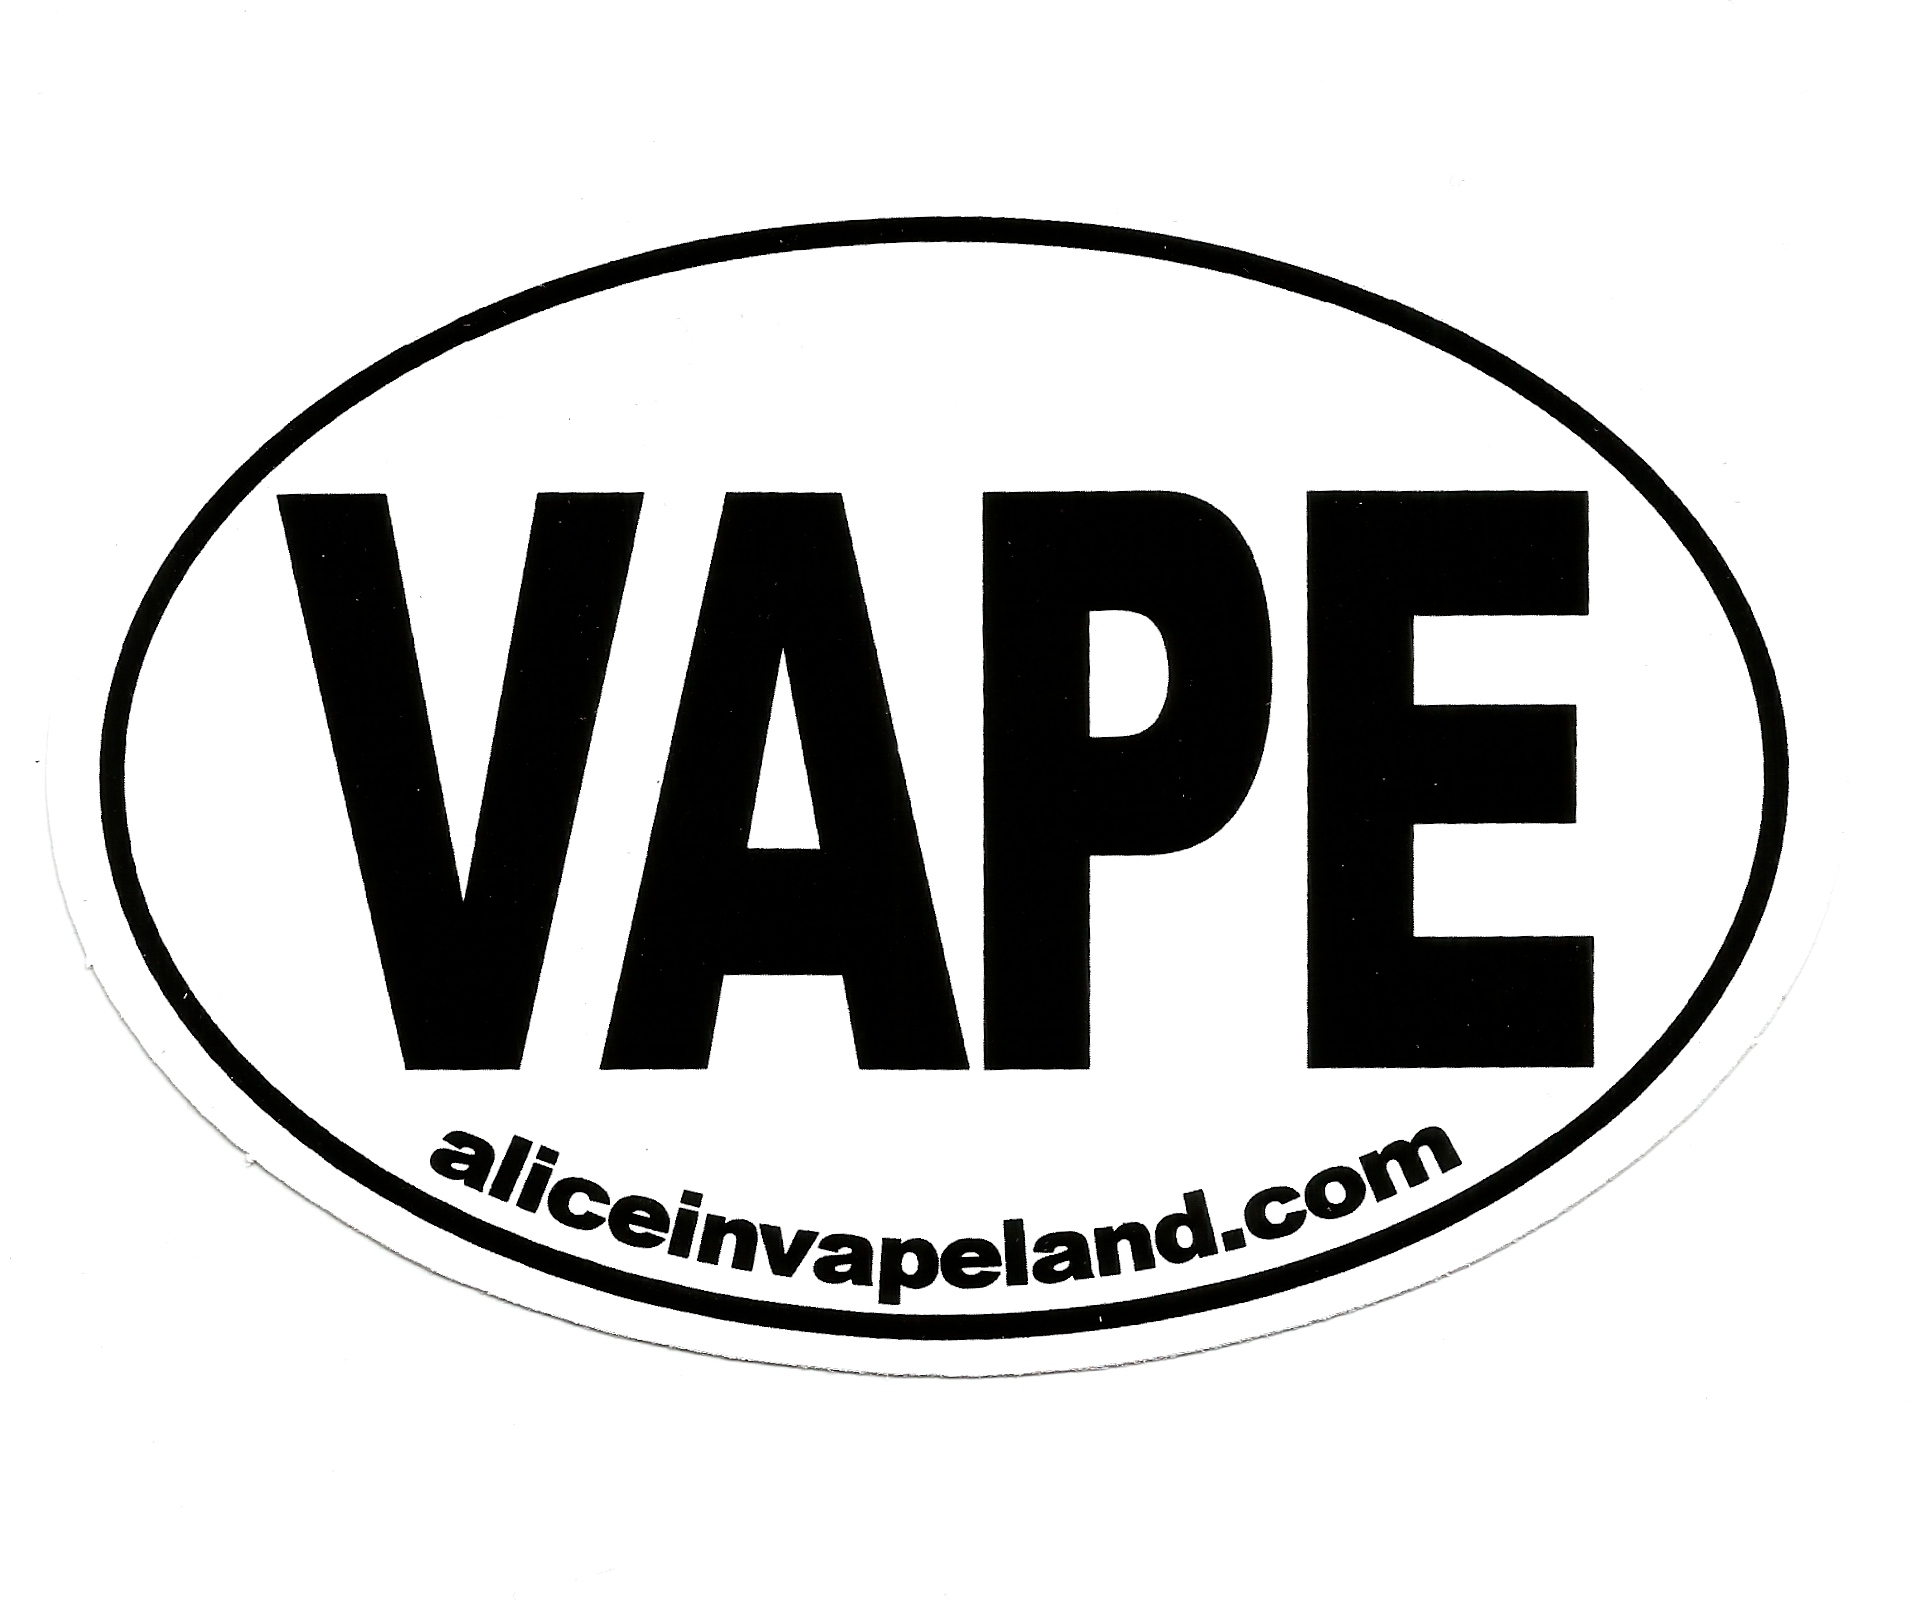 Vape Bumper Sticker